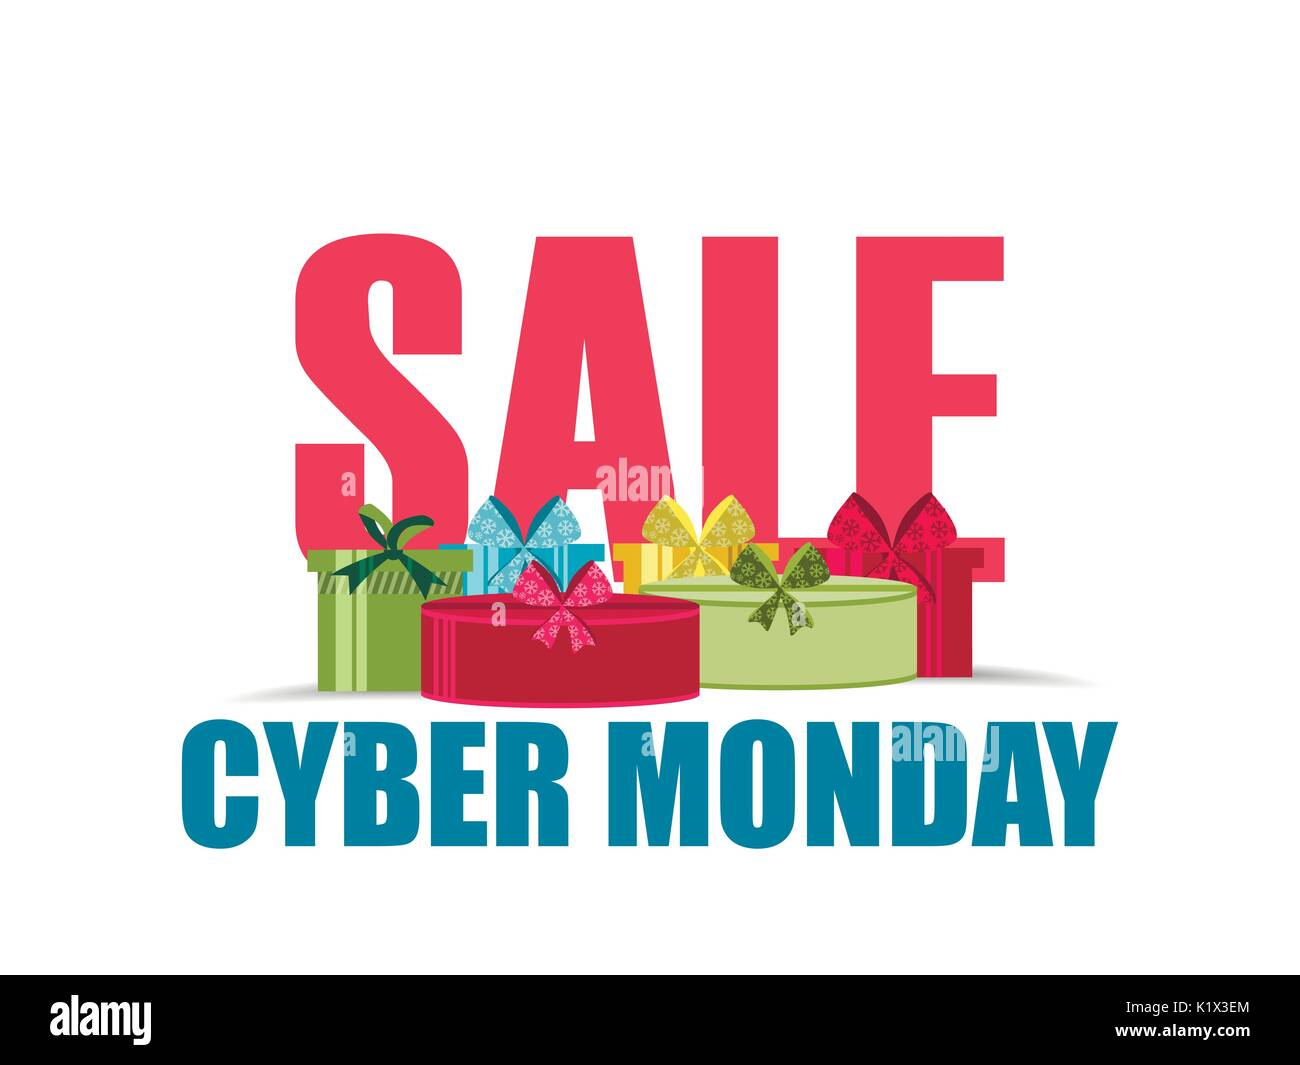 Buy Friday Shoppingblack cyber monday promotions picture trends